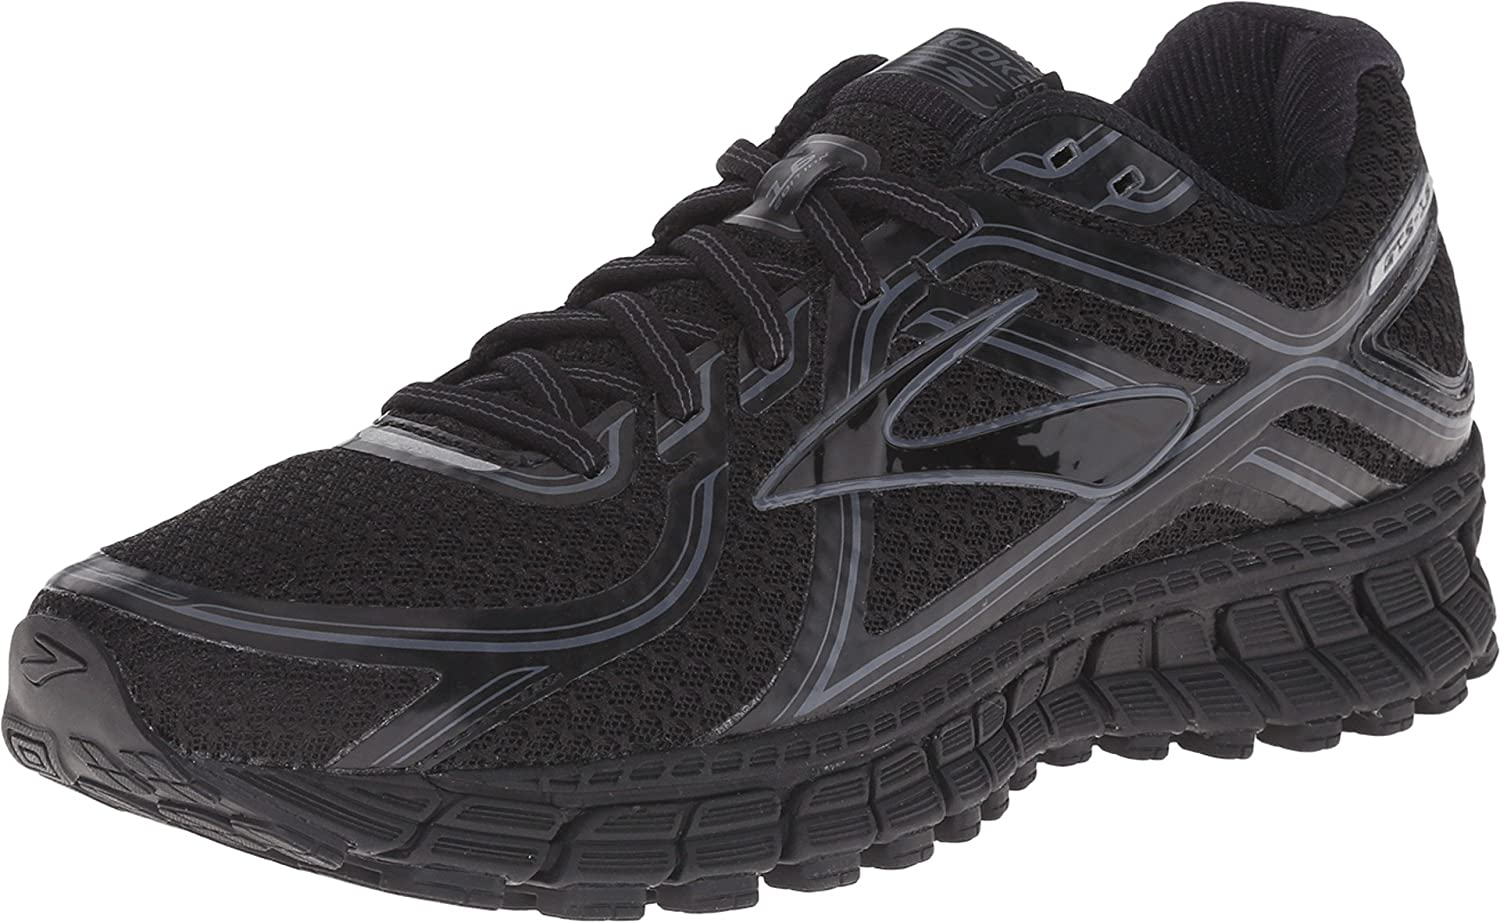 113f38c52 Amazon.com | Brooks Women's Adrenaline GTS 16 Black/Anthracite Sneaker 6.5  B (M) | Fashion Sneakers